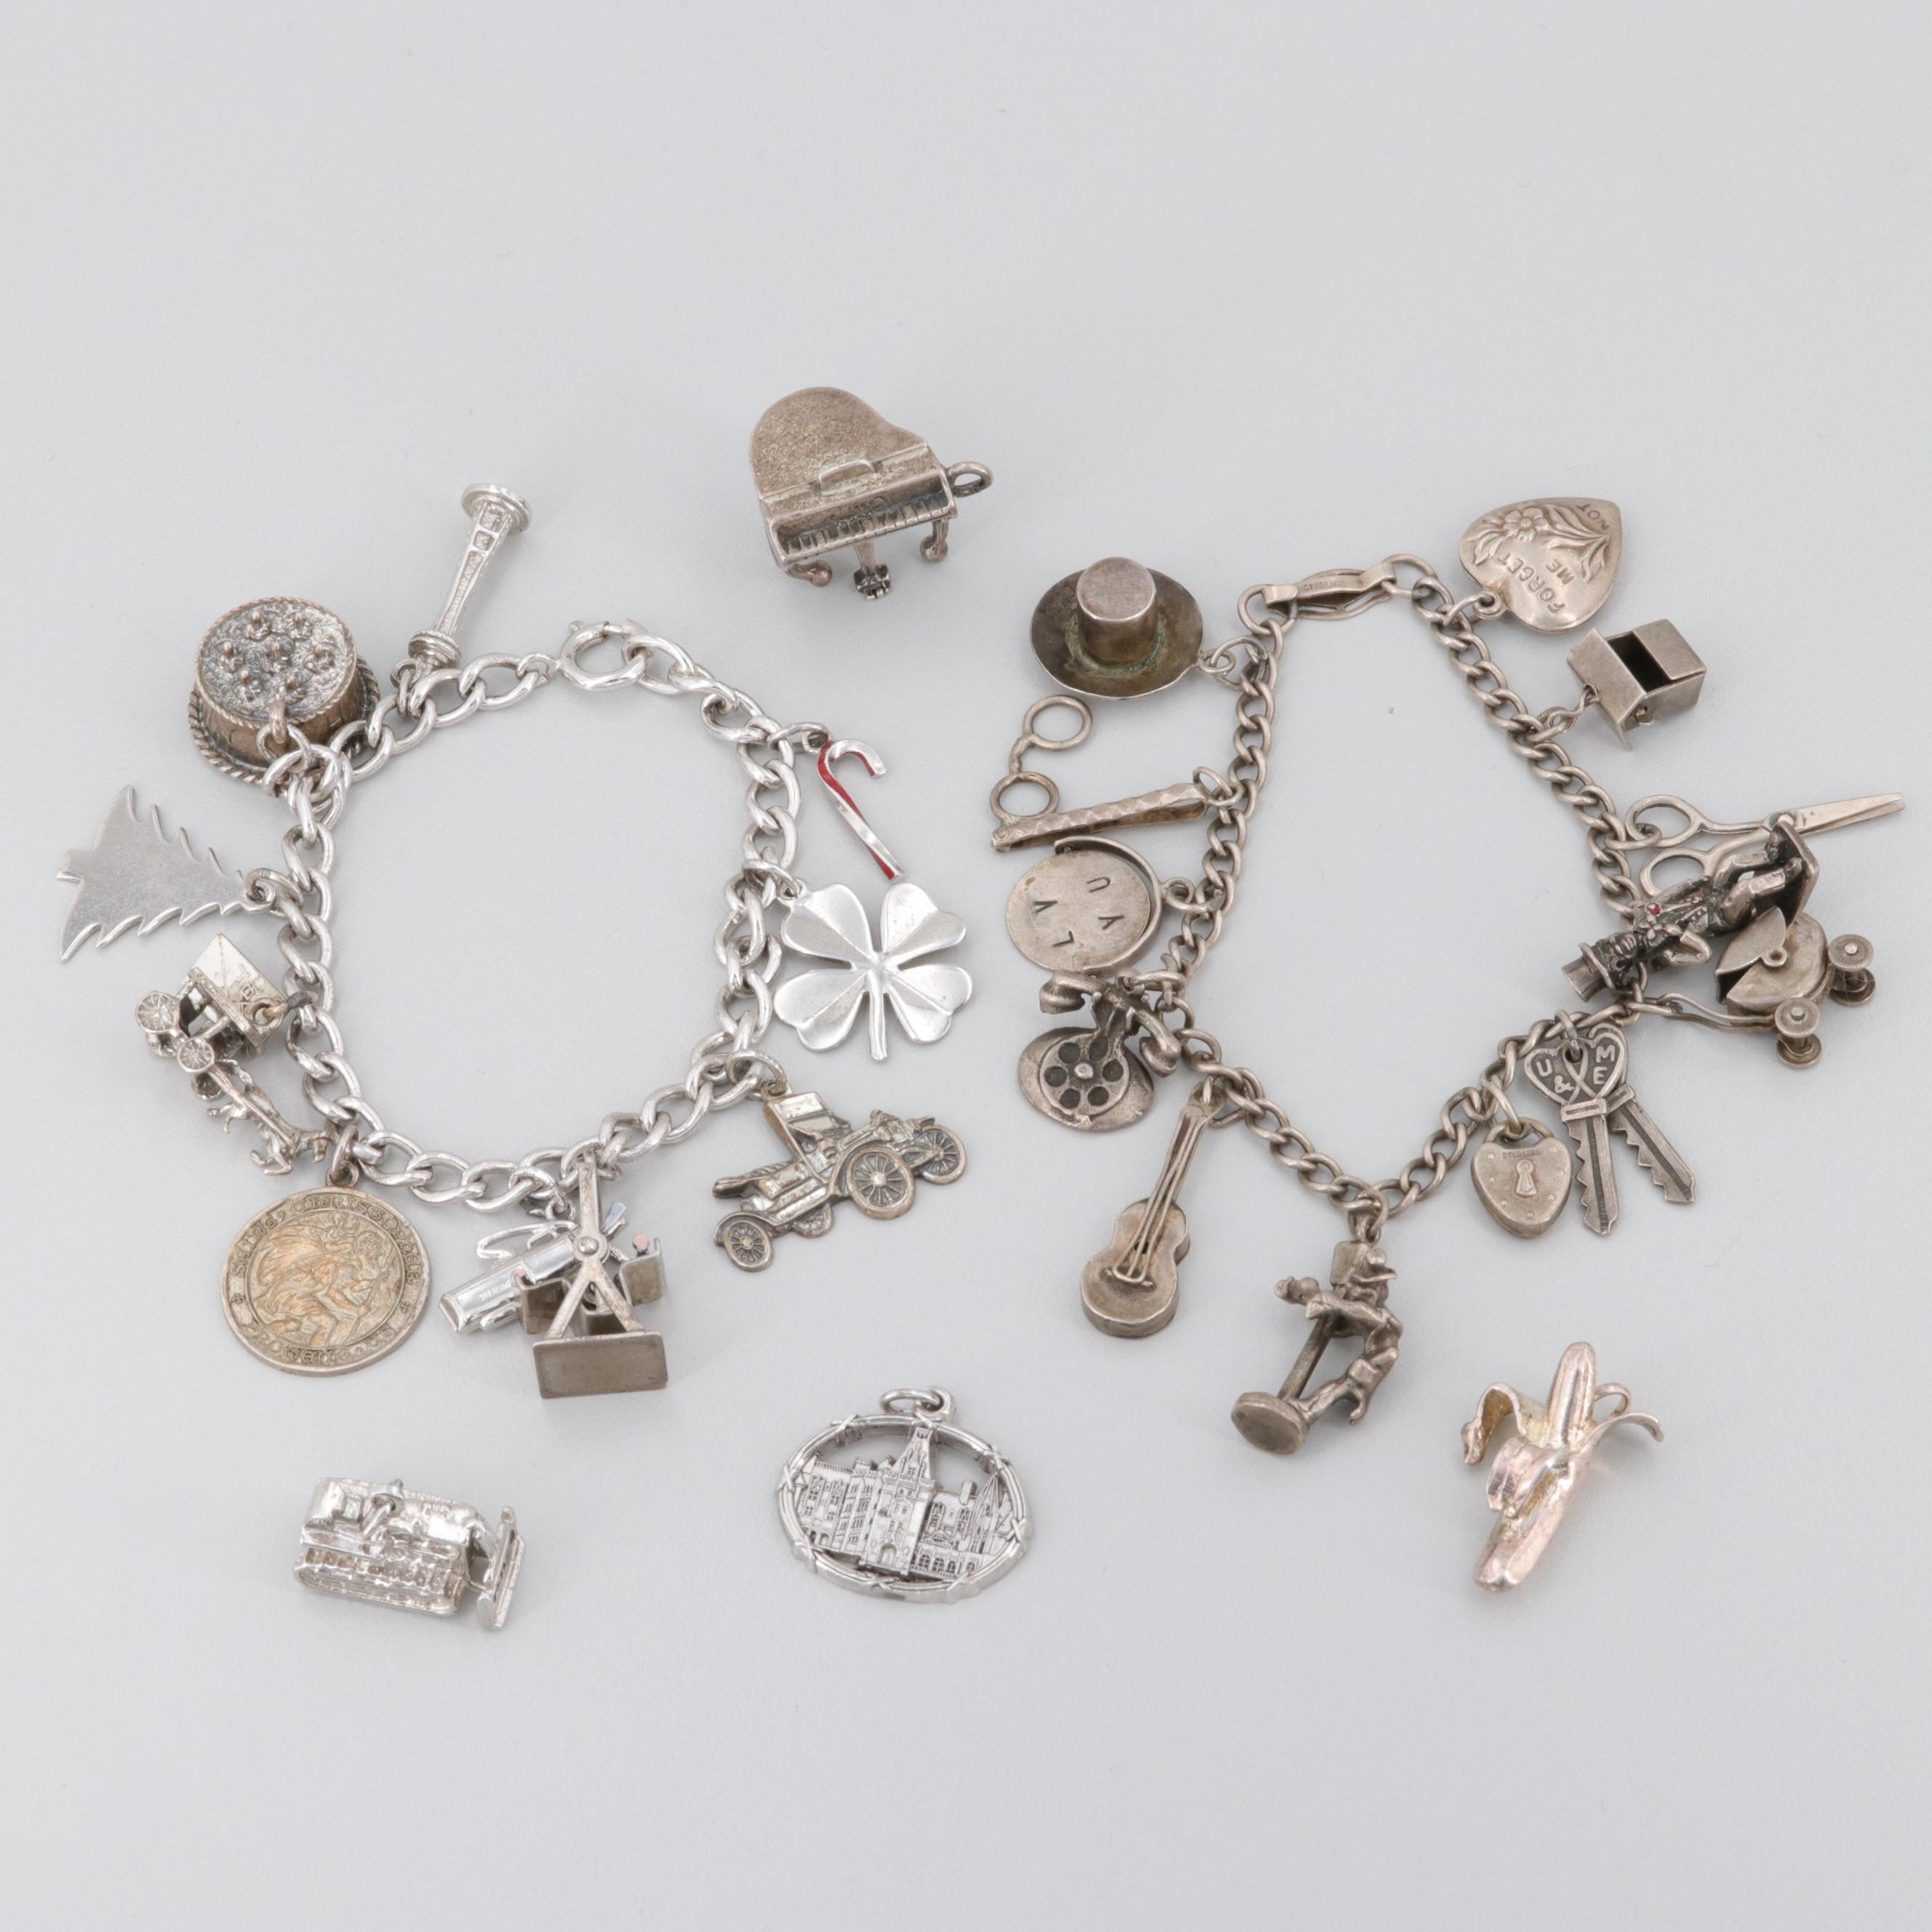 Sterling Silver Charm Bracelets and Loose Charms Including Danecraft